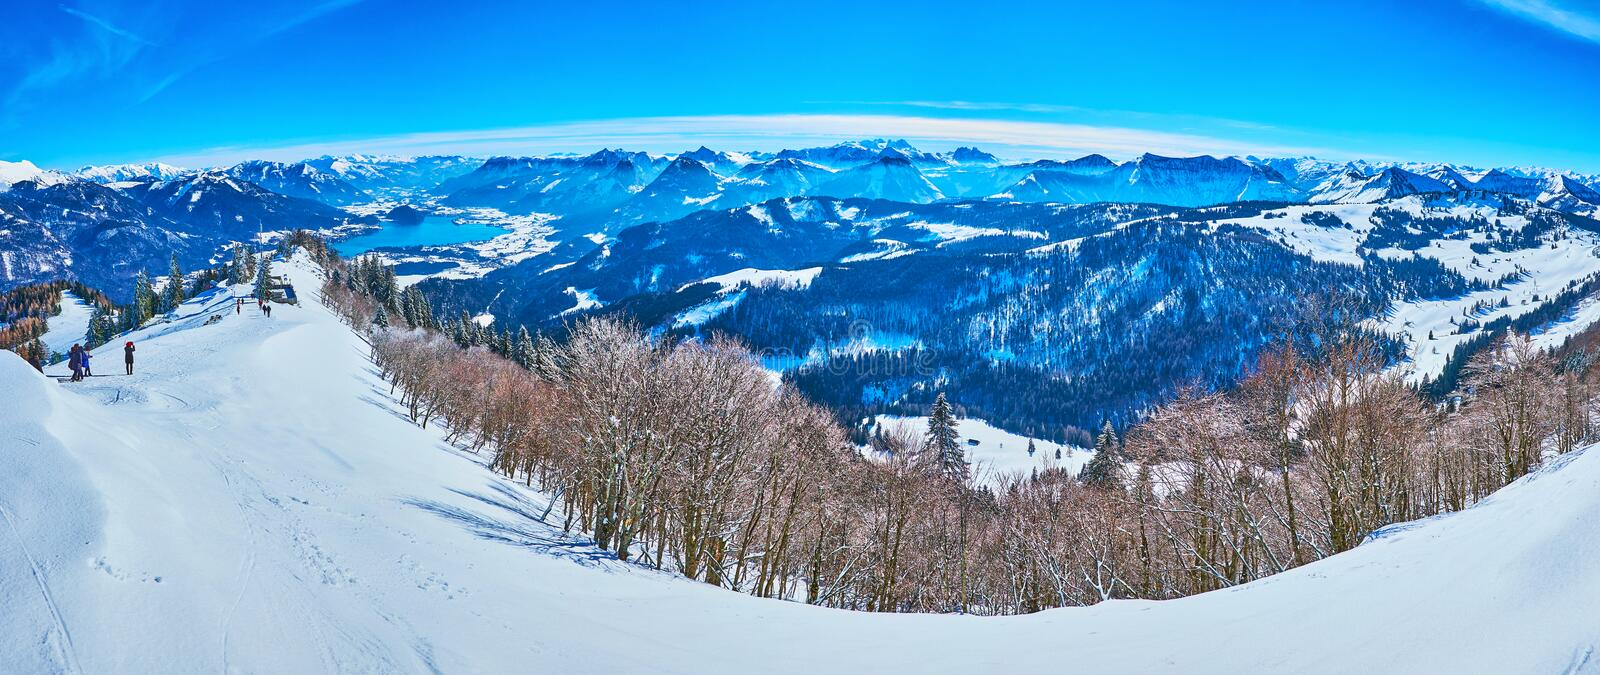 Panorama from the peak of Zwolferhorn, St Gilden, Salzkammergut, Austria. Panorama from Zwolferhorn mountain top with a view on Alpine scenery, pine forests stock photos